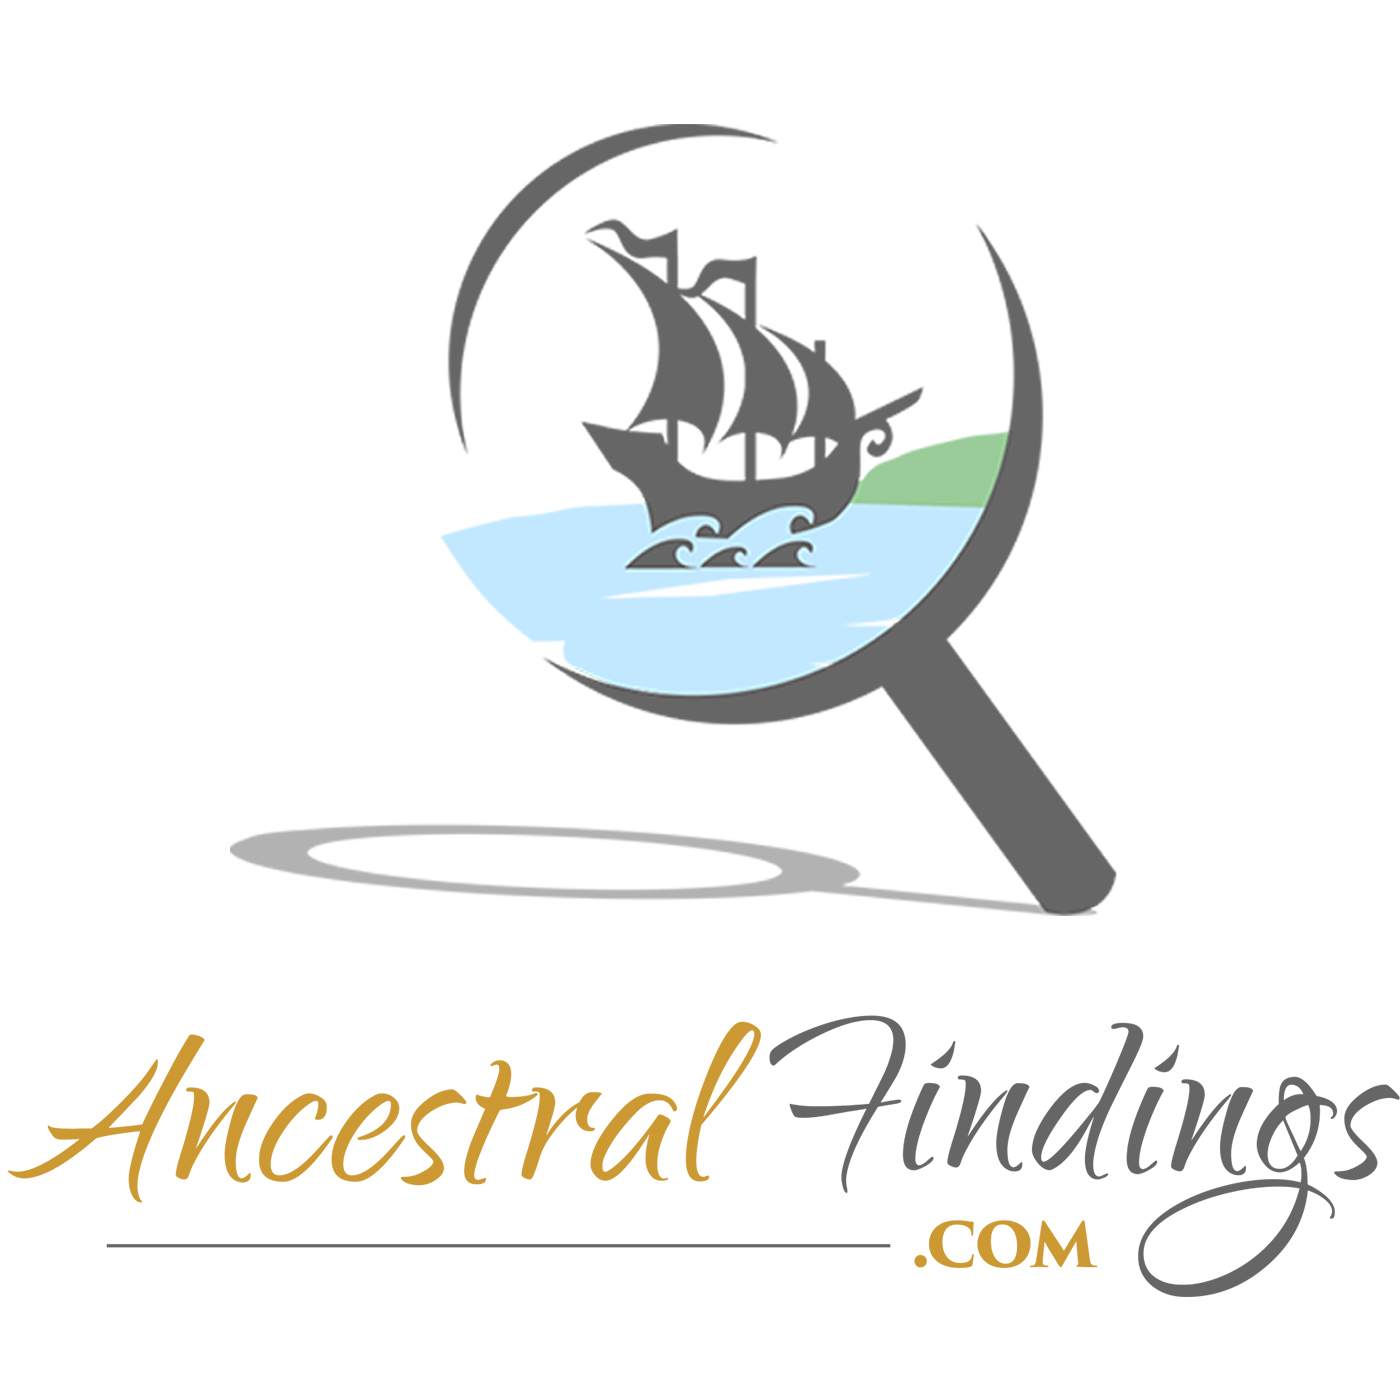 Ancestral Findings - Genealogy Podcast show art